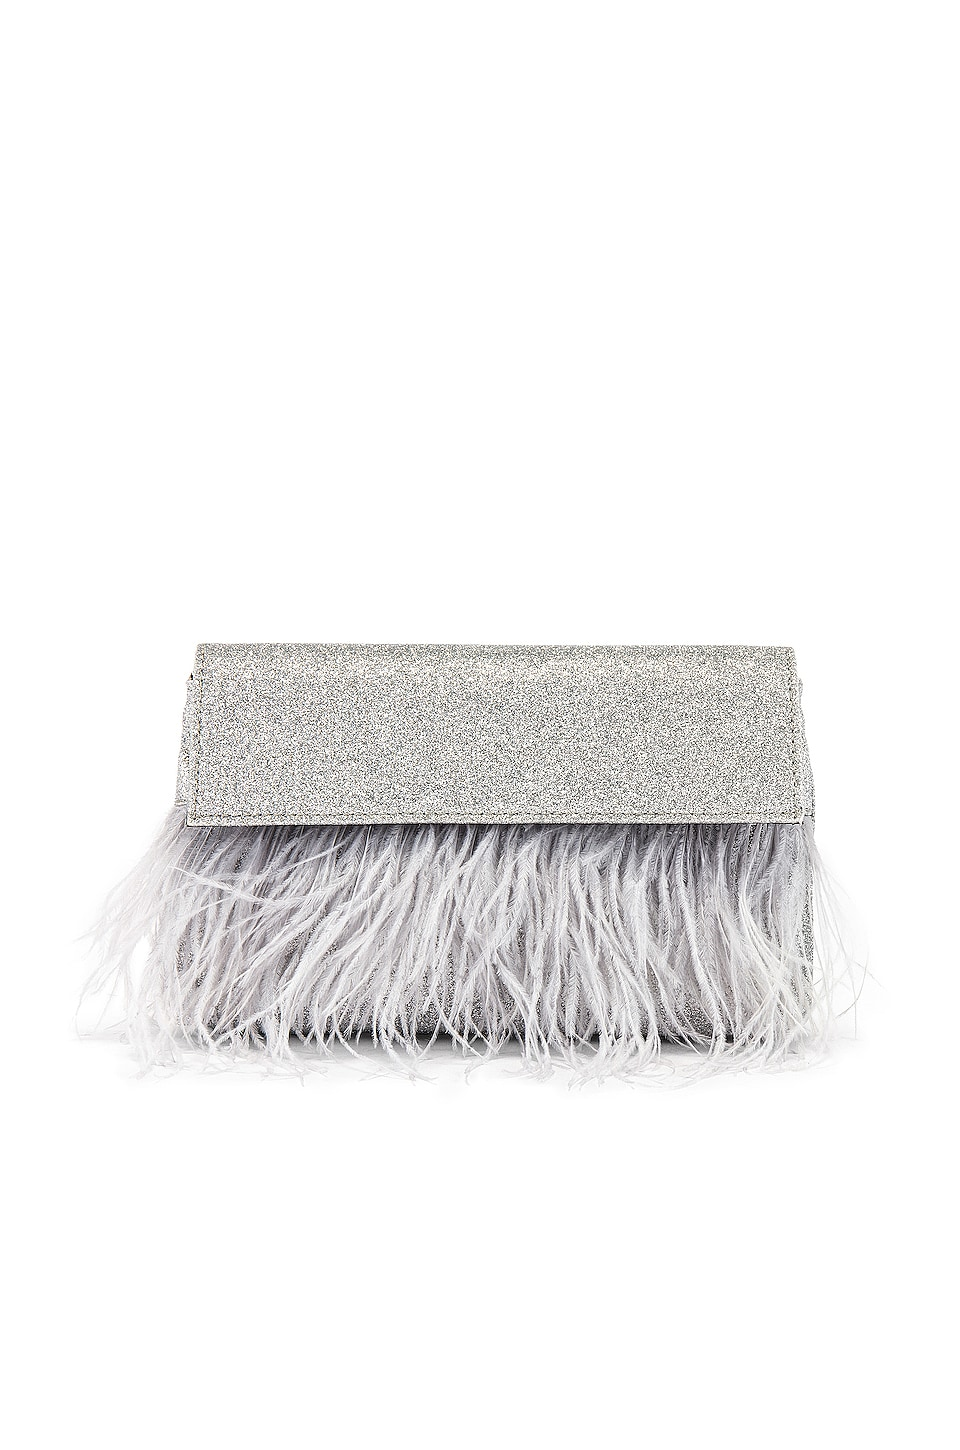 olga berg Mia Glitter Feather Trim Shoulder Bag in Silver